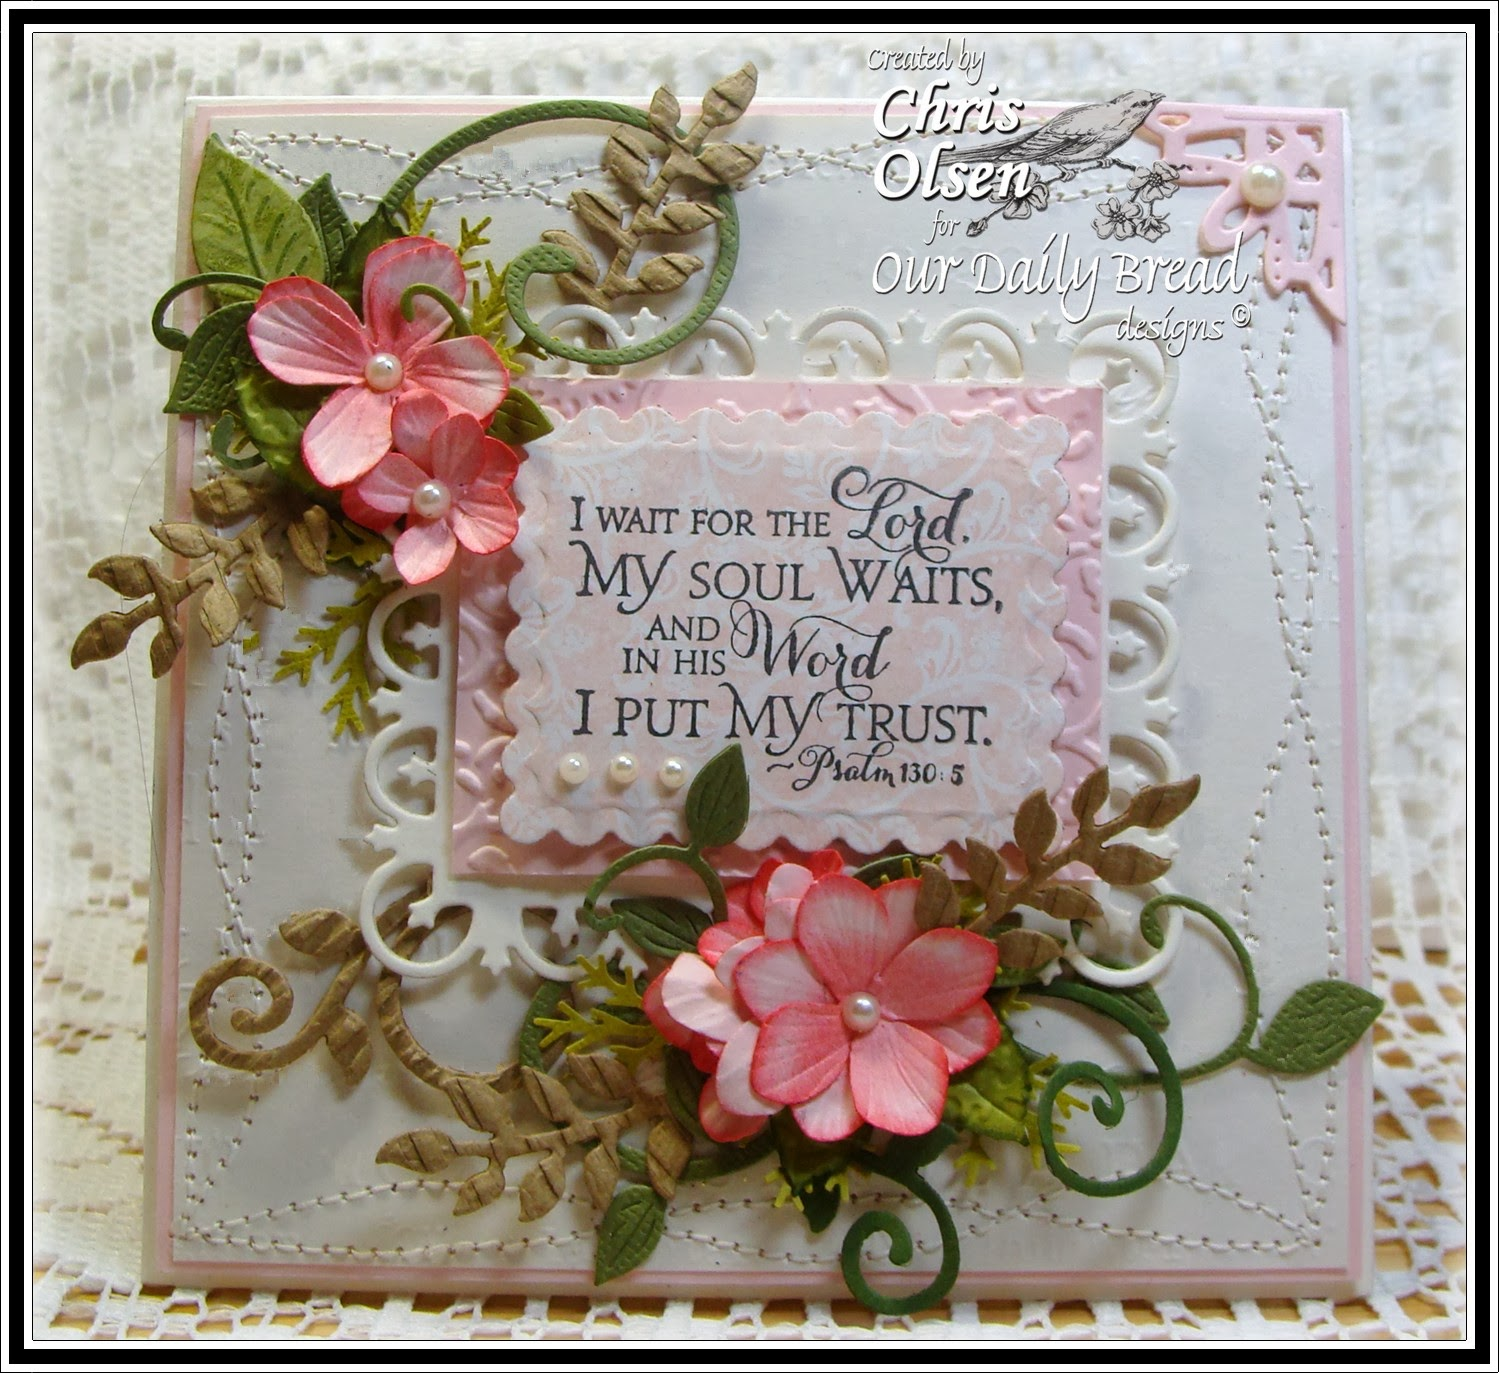 Our Daily Bread Designs, designer- Chris Olsen, Scripture Collection 9, Ornate Borders and Flowers die, Fancy Foliage die